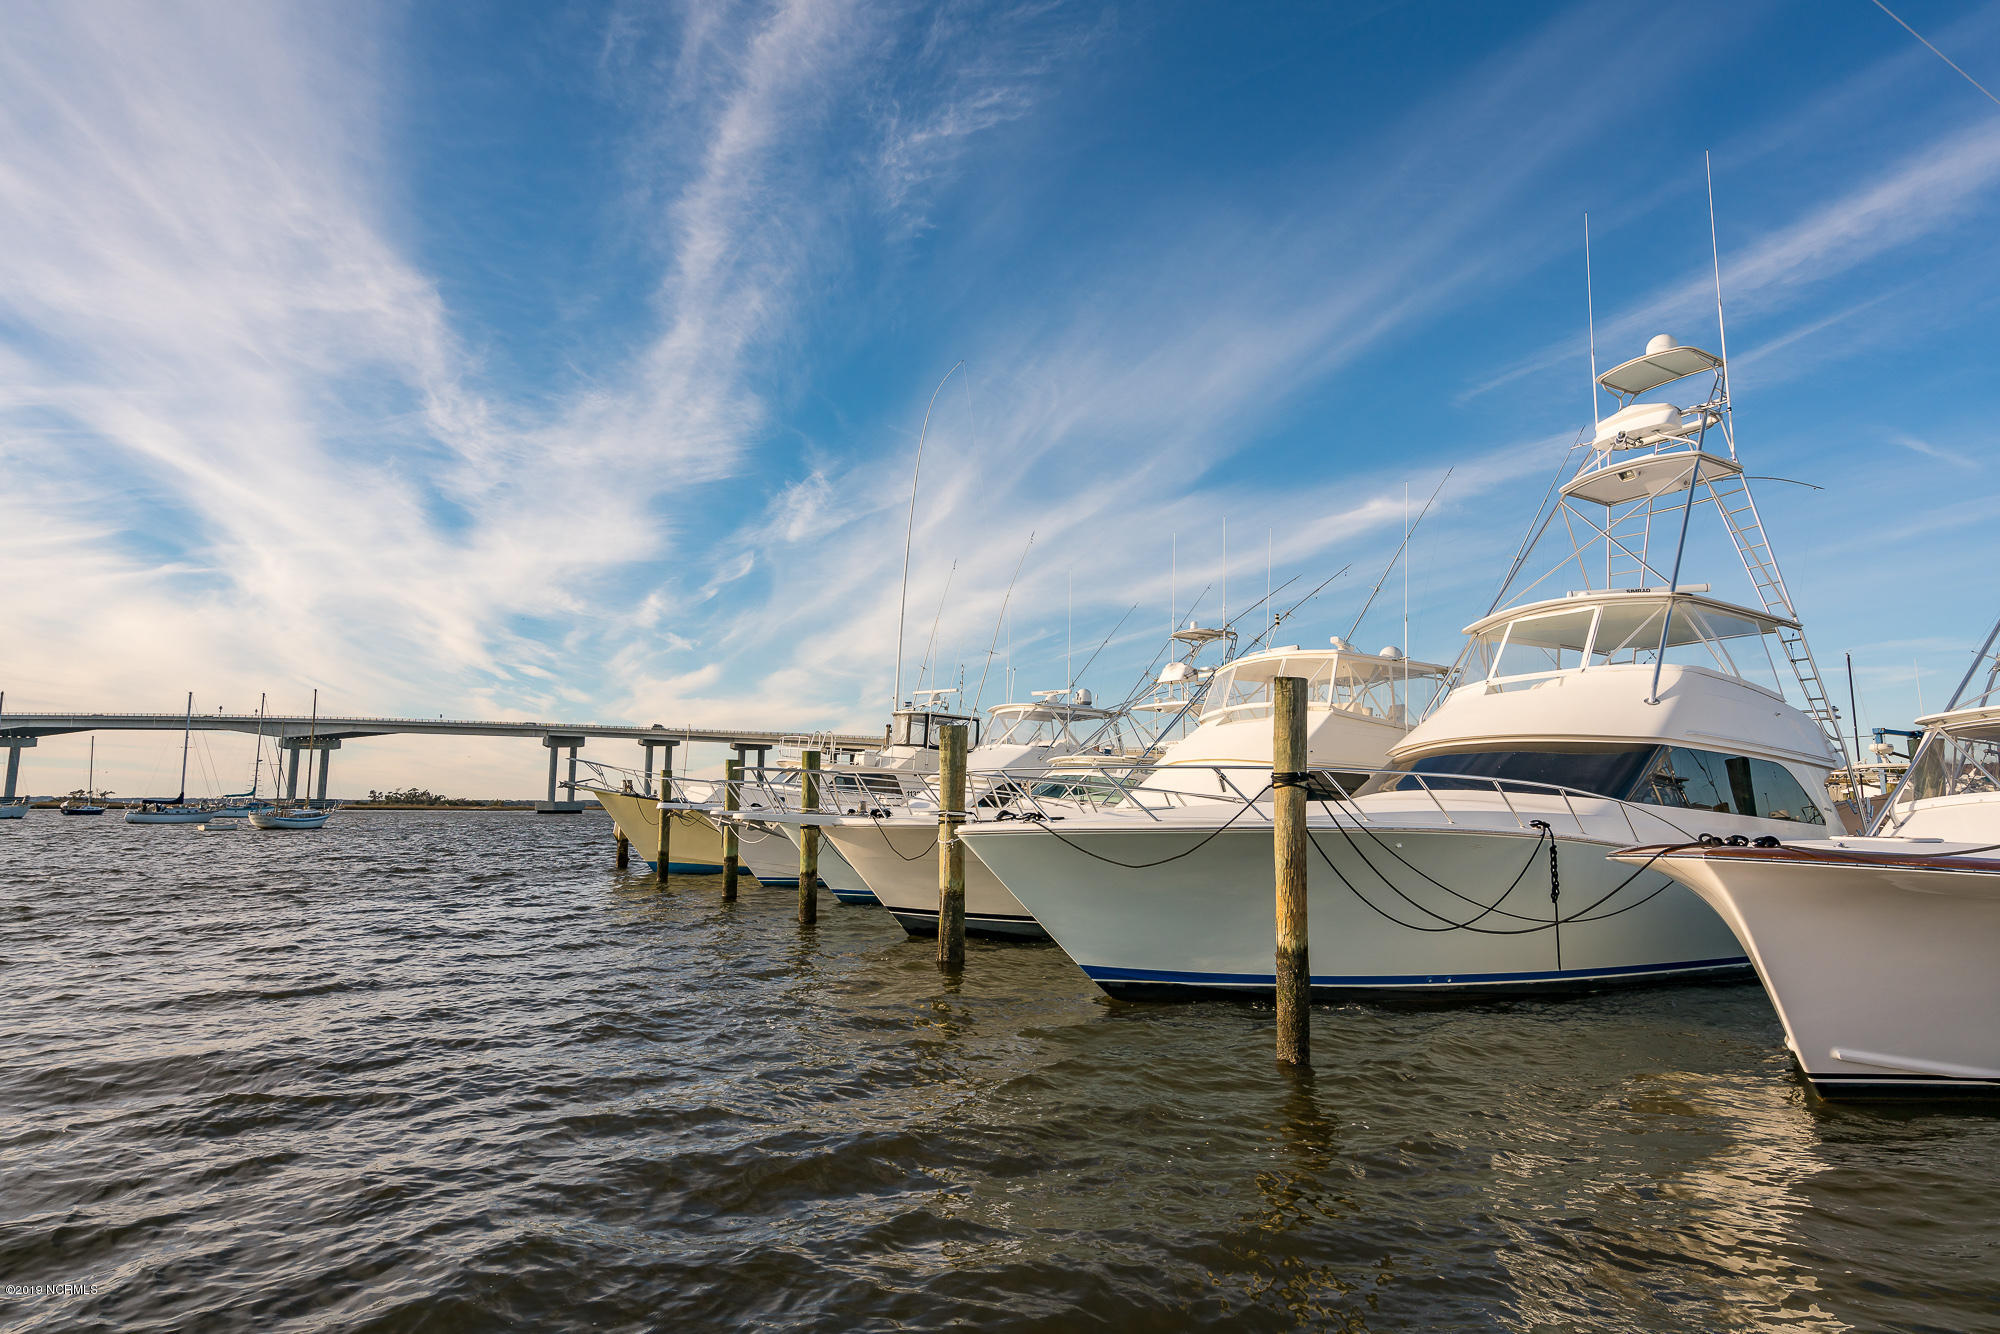 114 Town Creek Drive, Beaufort, North Carolina 28516, ,Wet,For sale,Town Creek,100153575